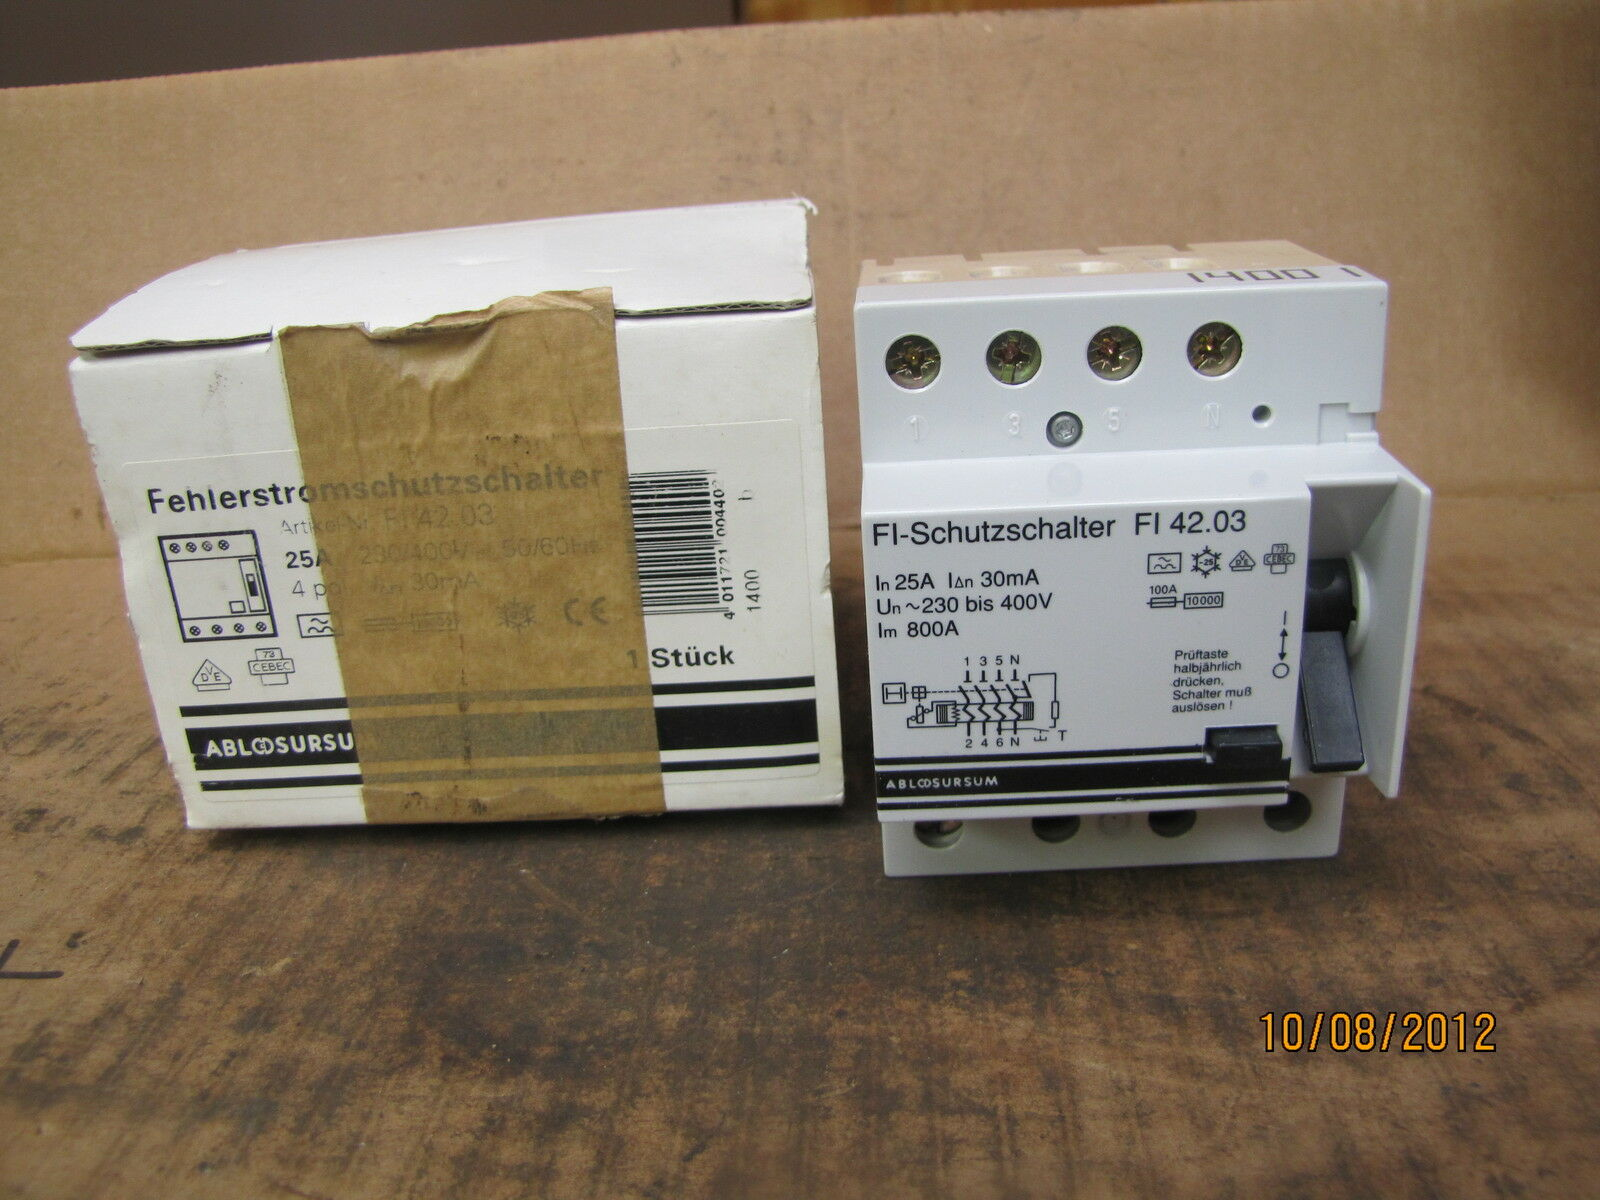 Abl Sursum Circuit Breaker Fi 4203 Fi4203 25a 25 A Amp 400v 30ma 4 House Fuse Box Amps 10000 Pole New 1 Of 6only 2 Available